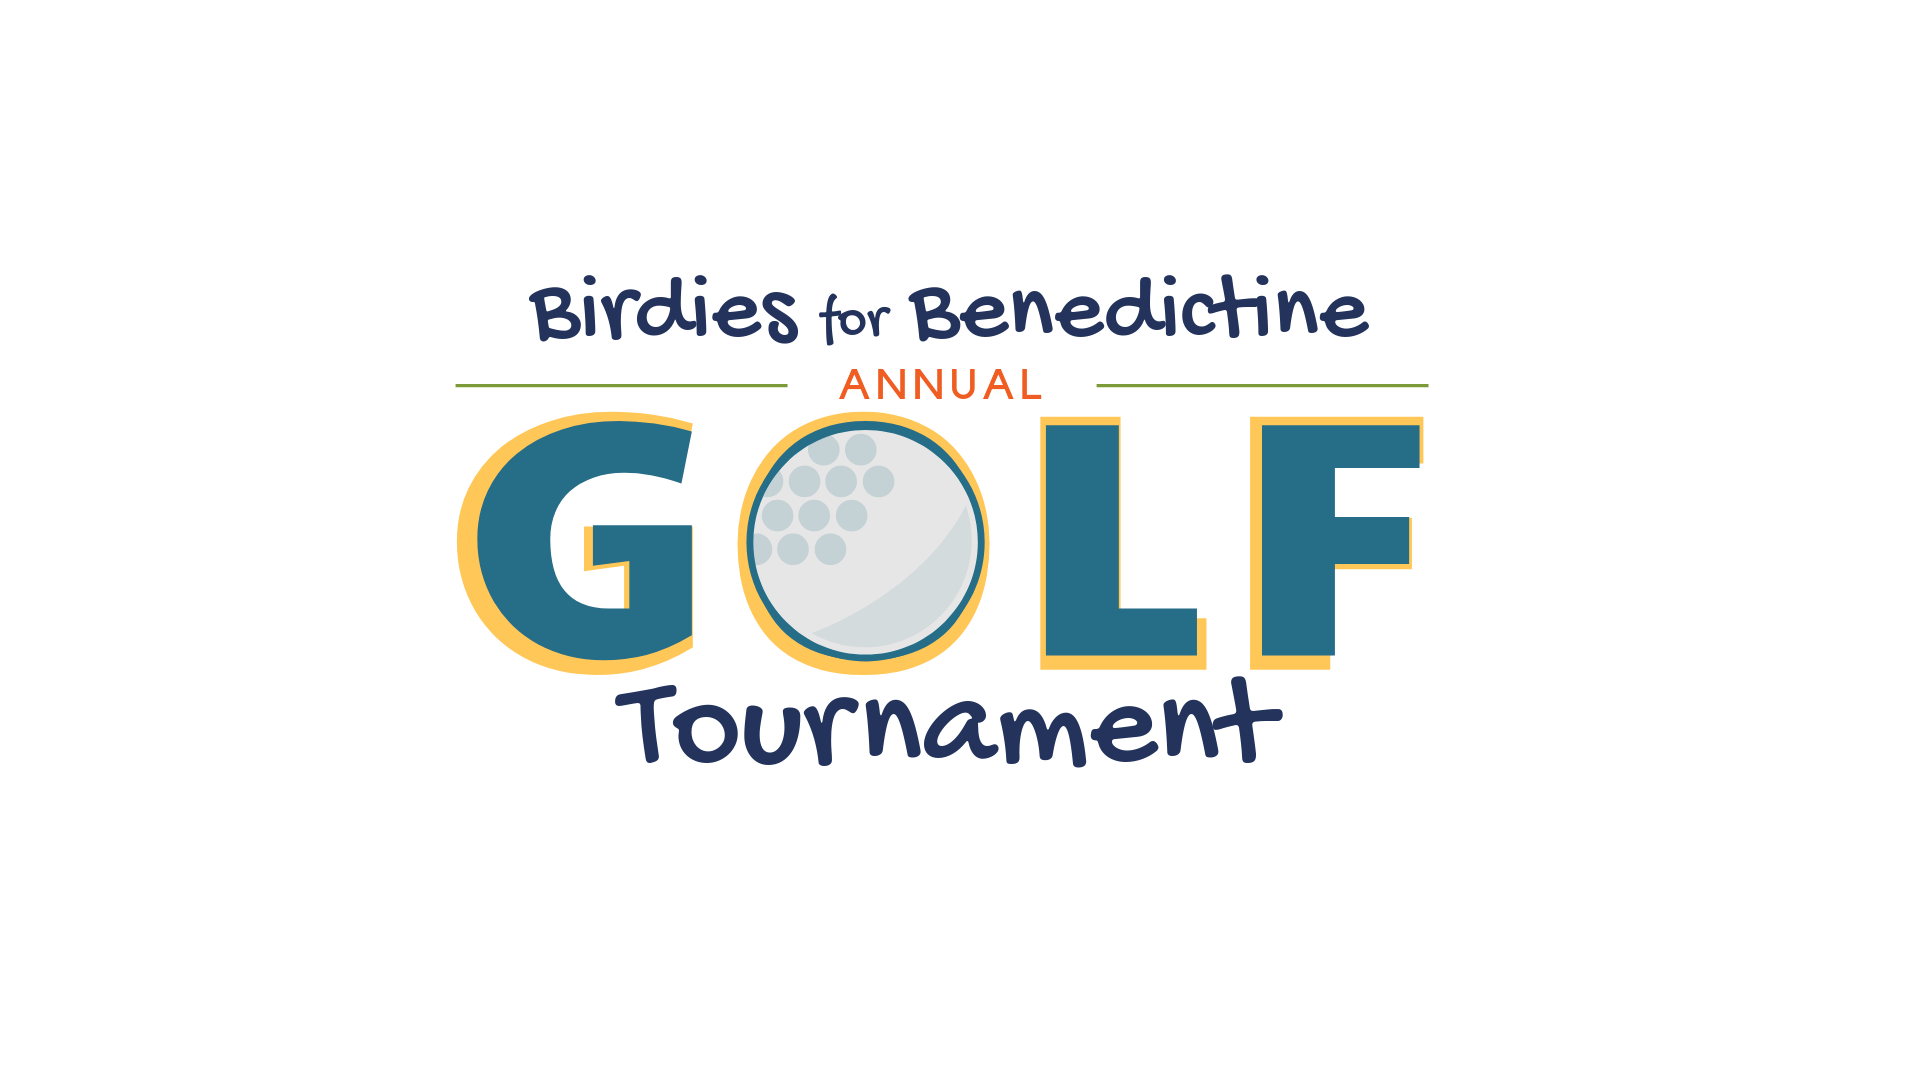 Birdies for Benedictine Charity Golf Tournament set for Oct. 18th